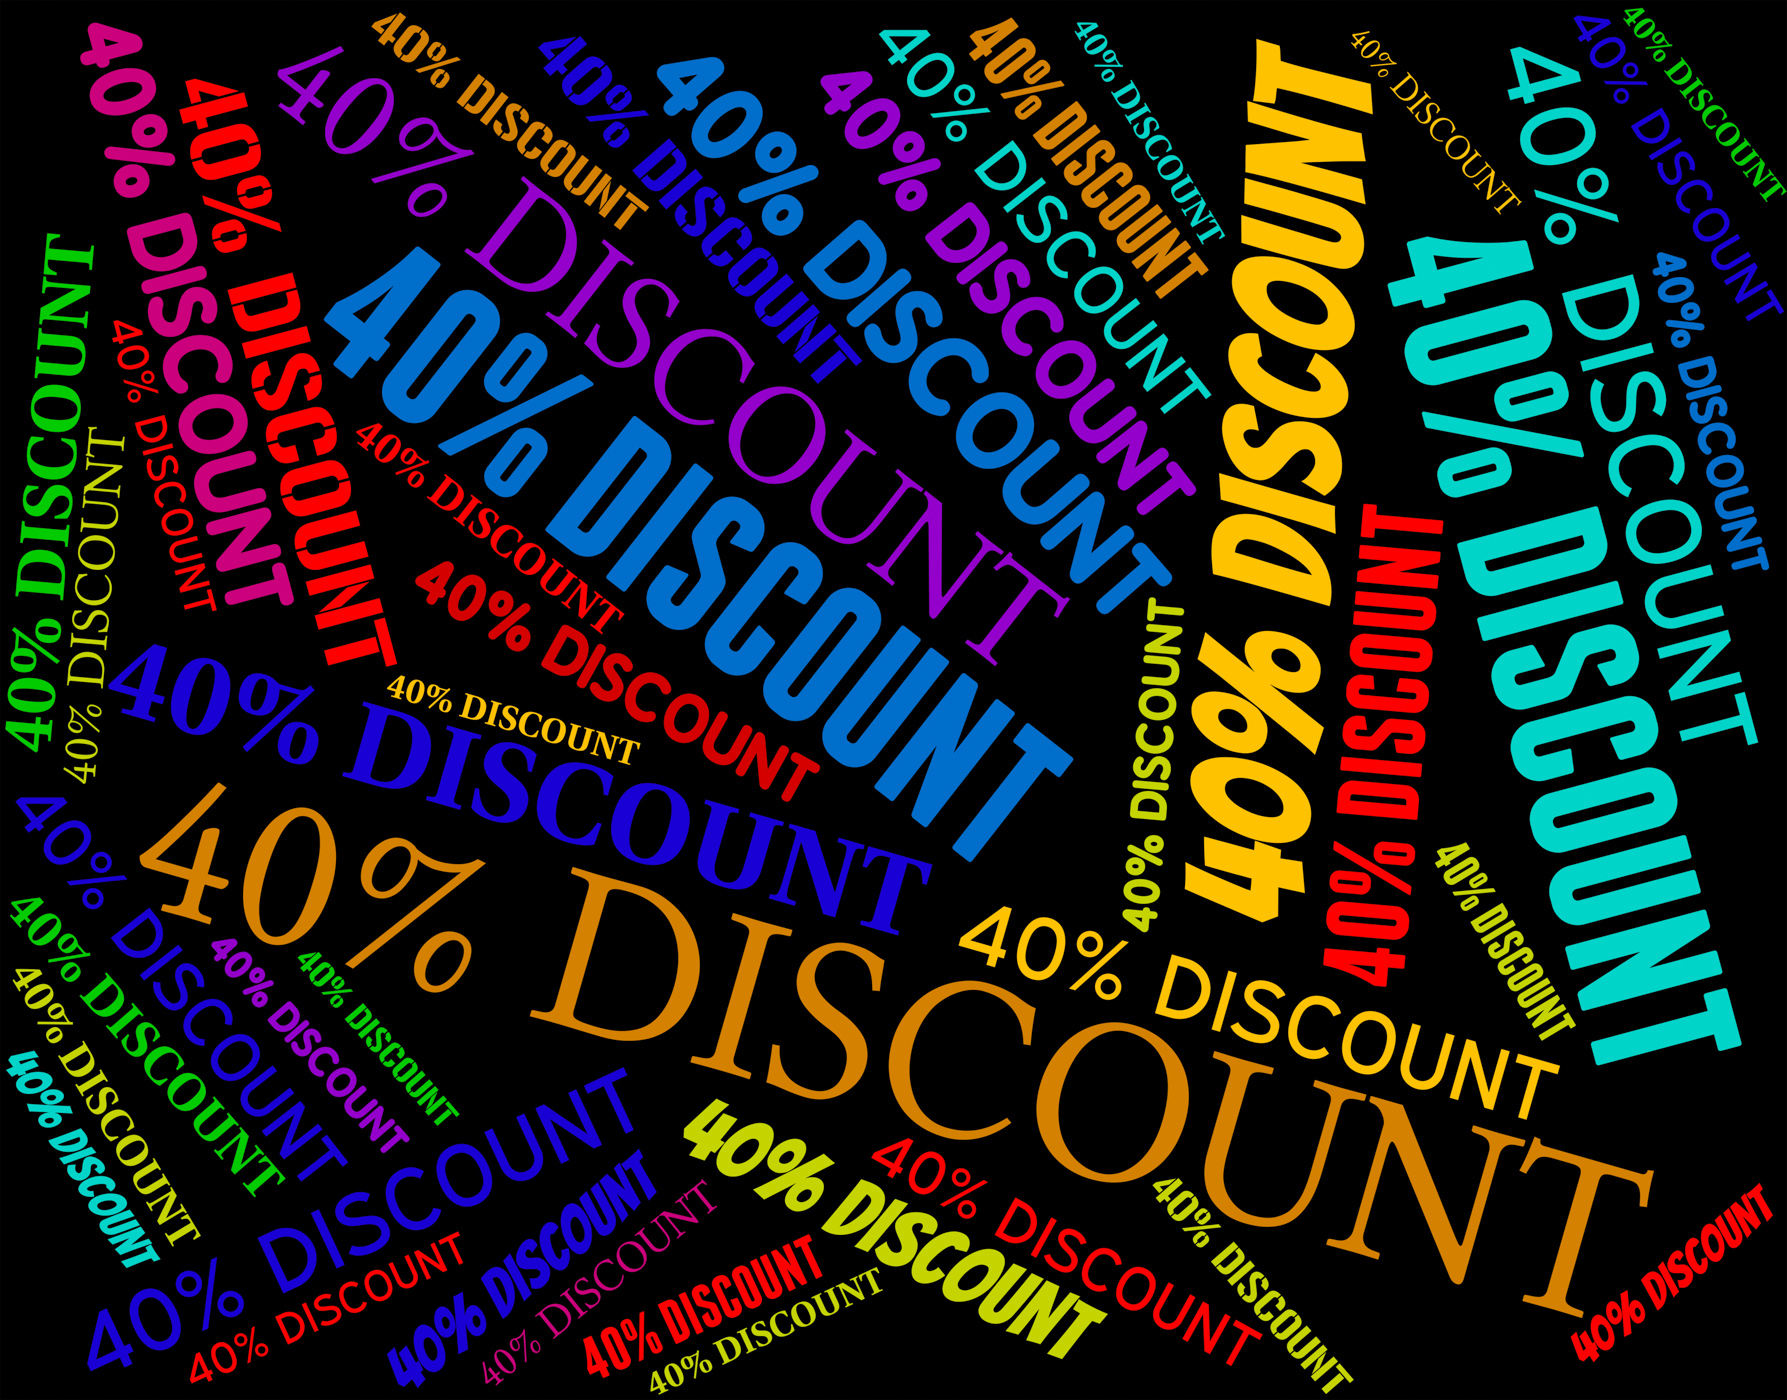 Forty Percent Discount Shows Retail Save And Offers, Bargain, Promo, Word, Text, HQ Photo